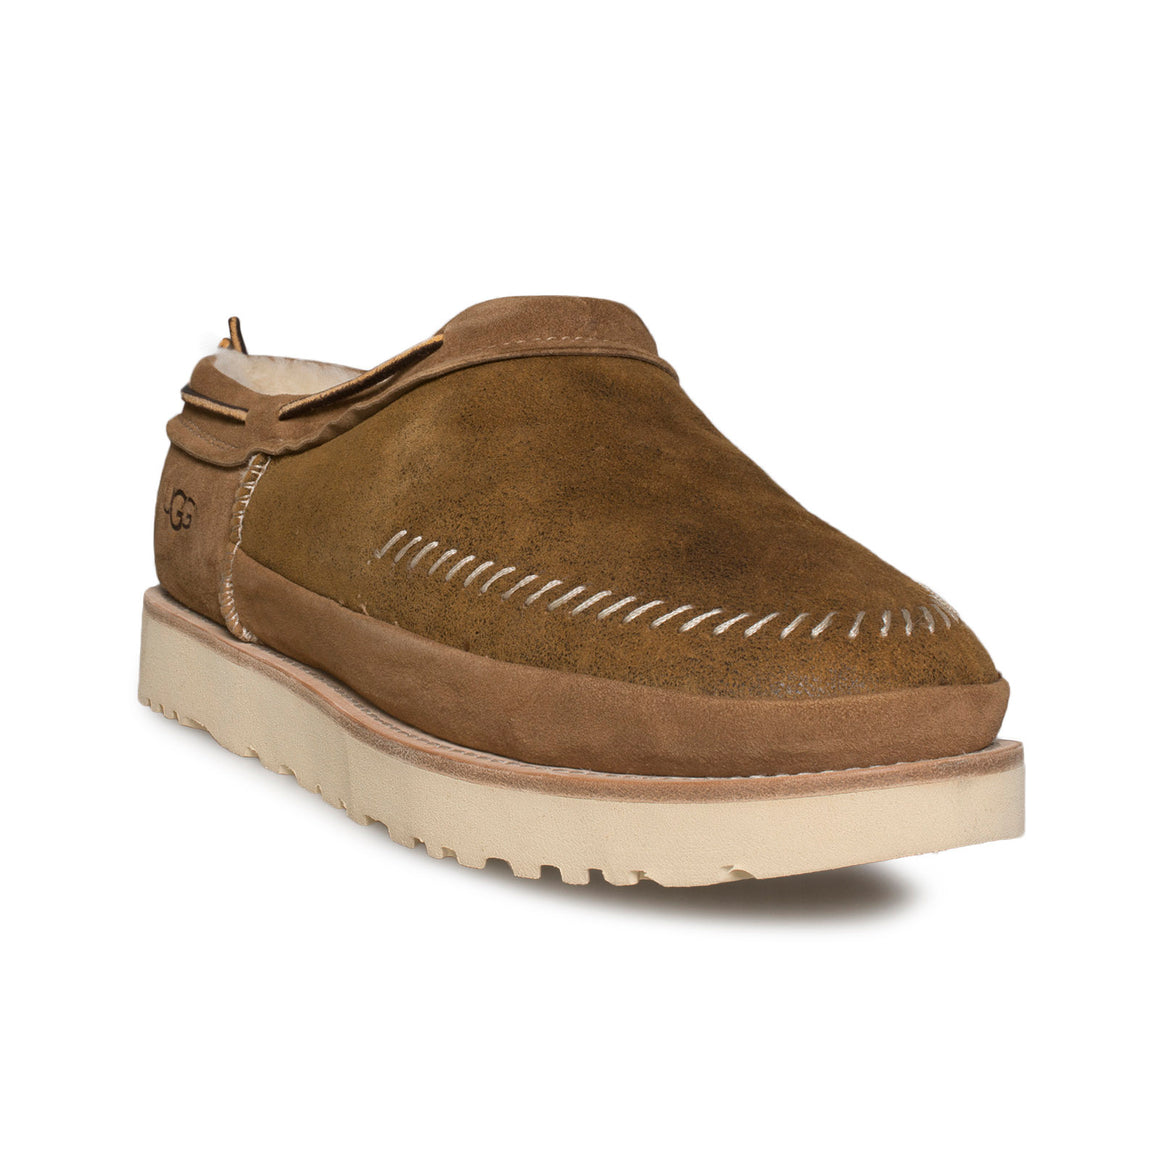 UGG Campfire Slip On Chestnut Shoes - Men's